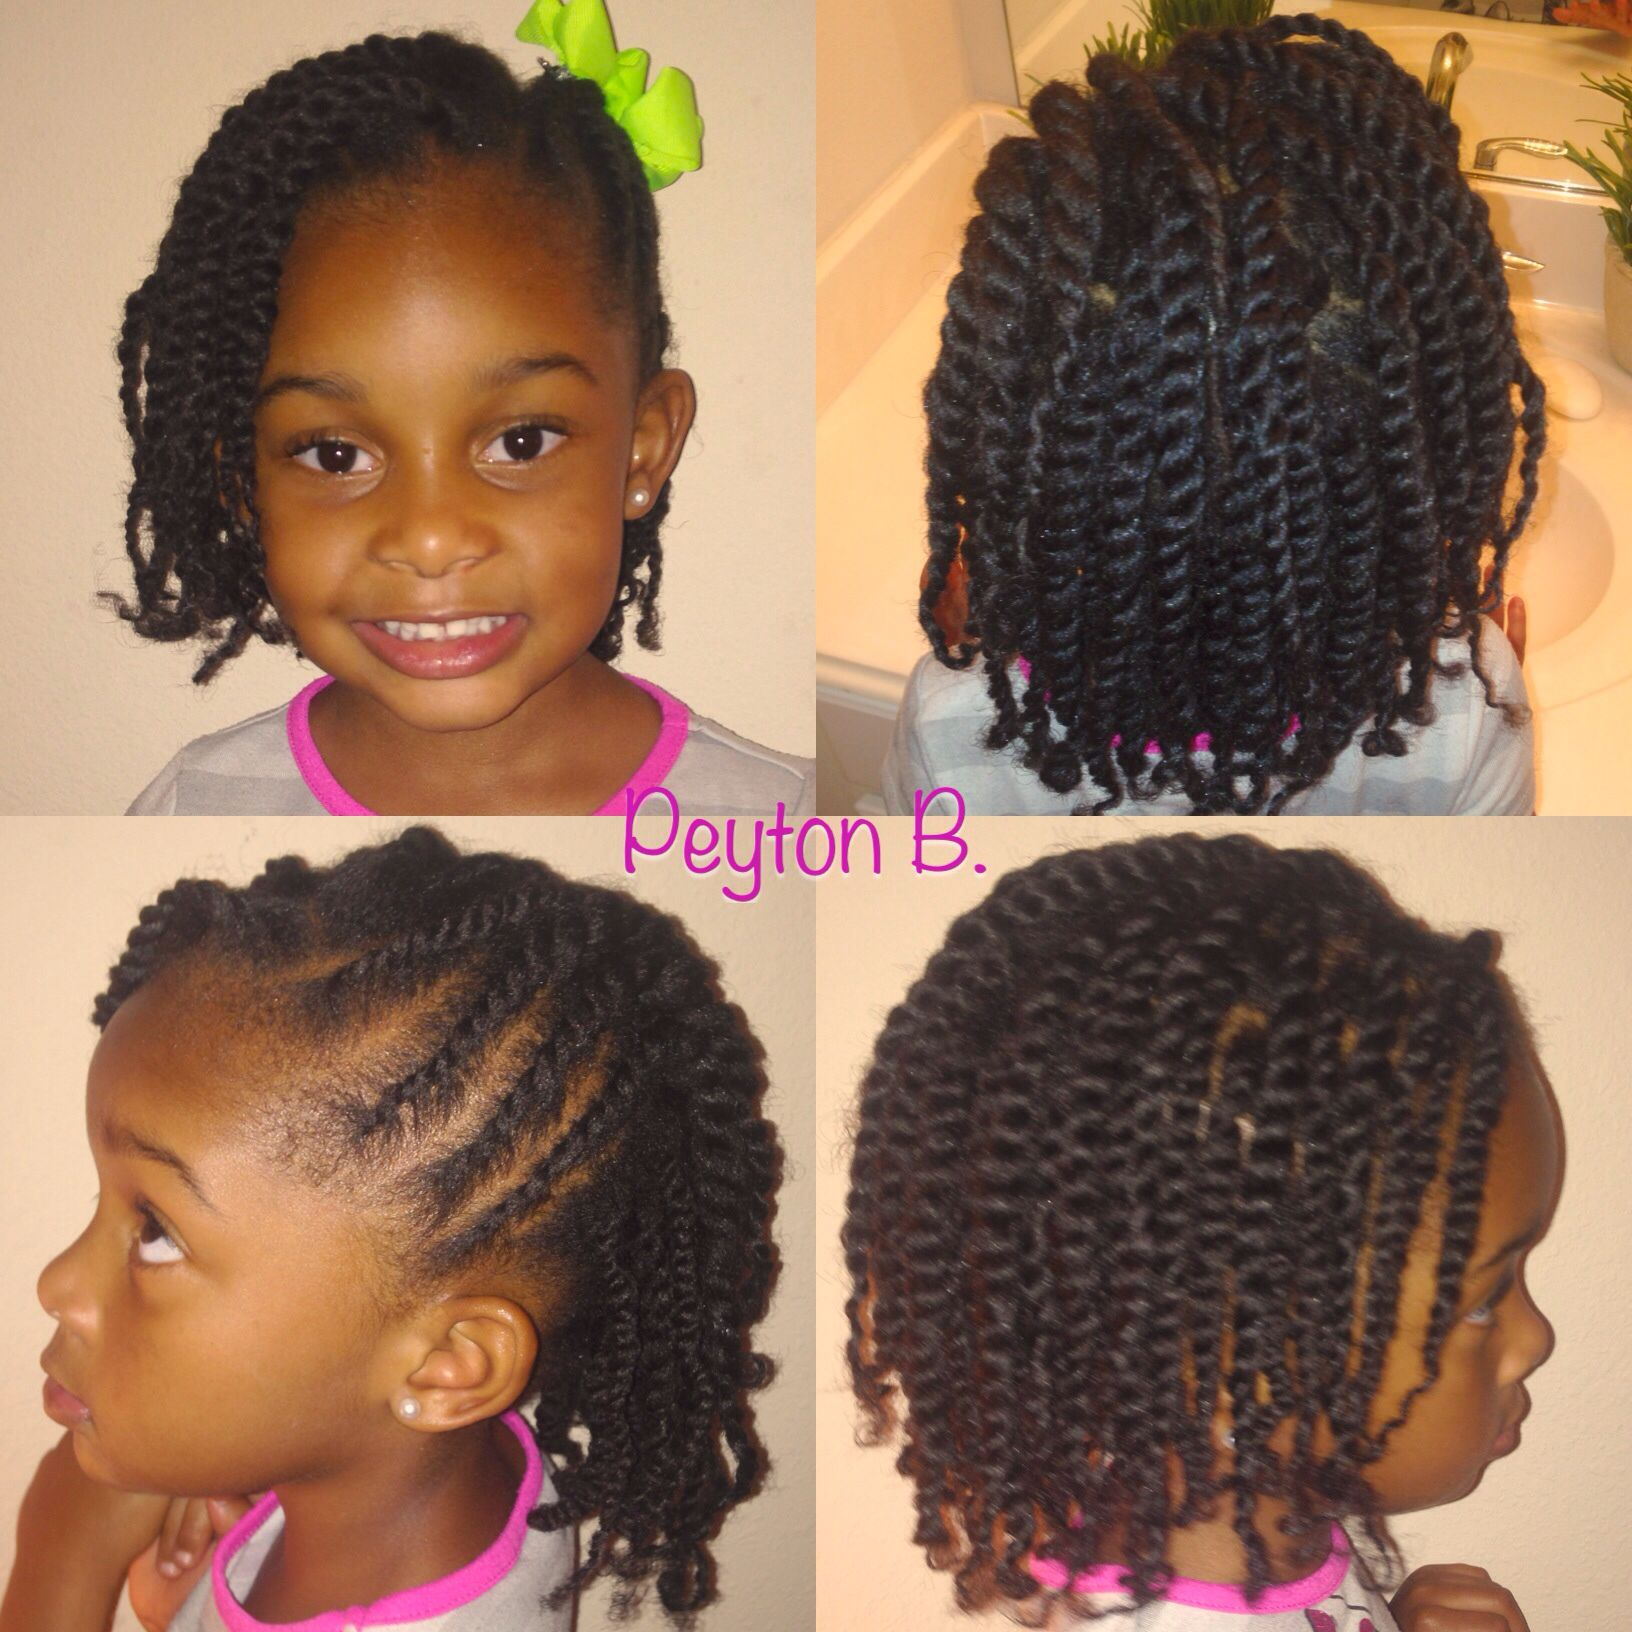 She Used Flat Twists To Create Fabulous Summer Curls On Short